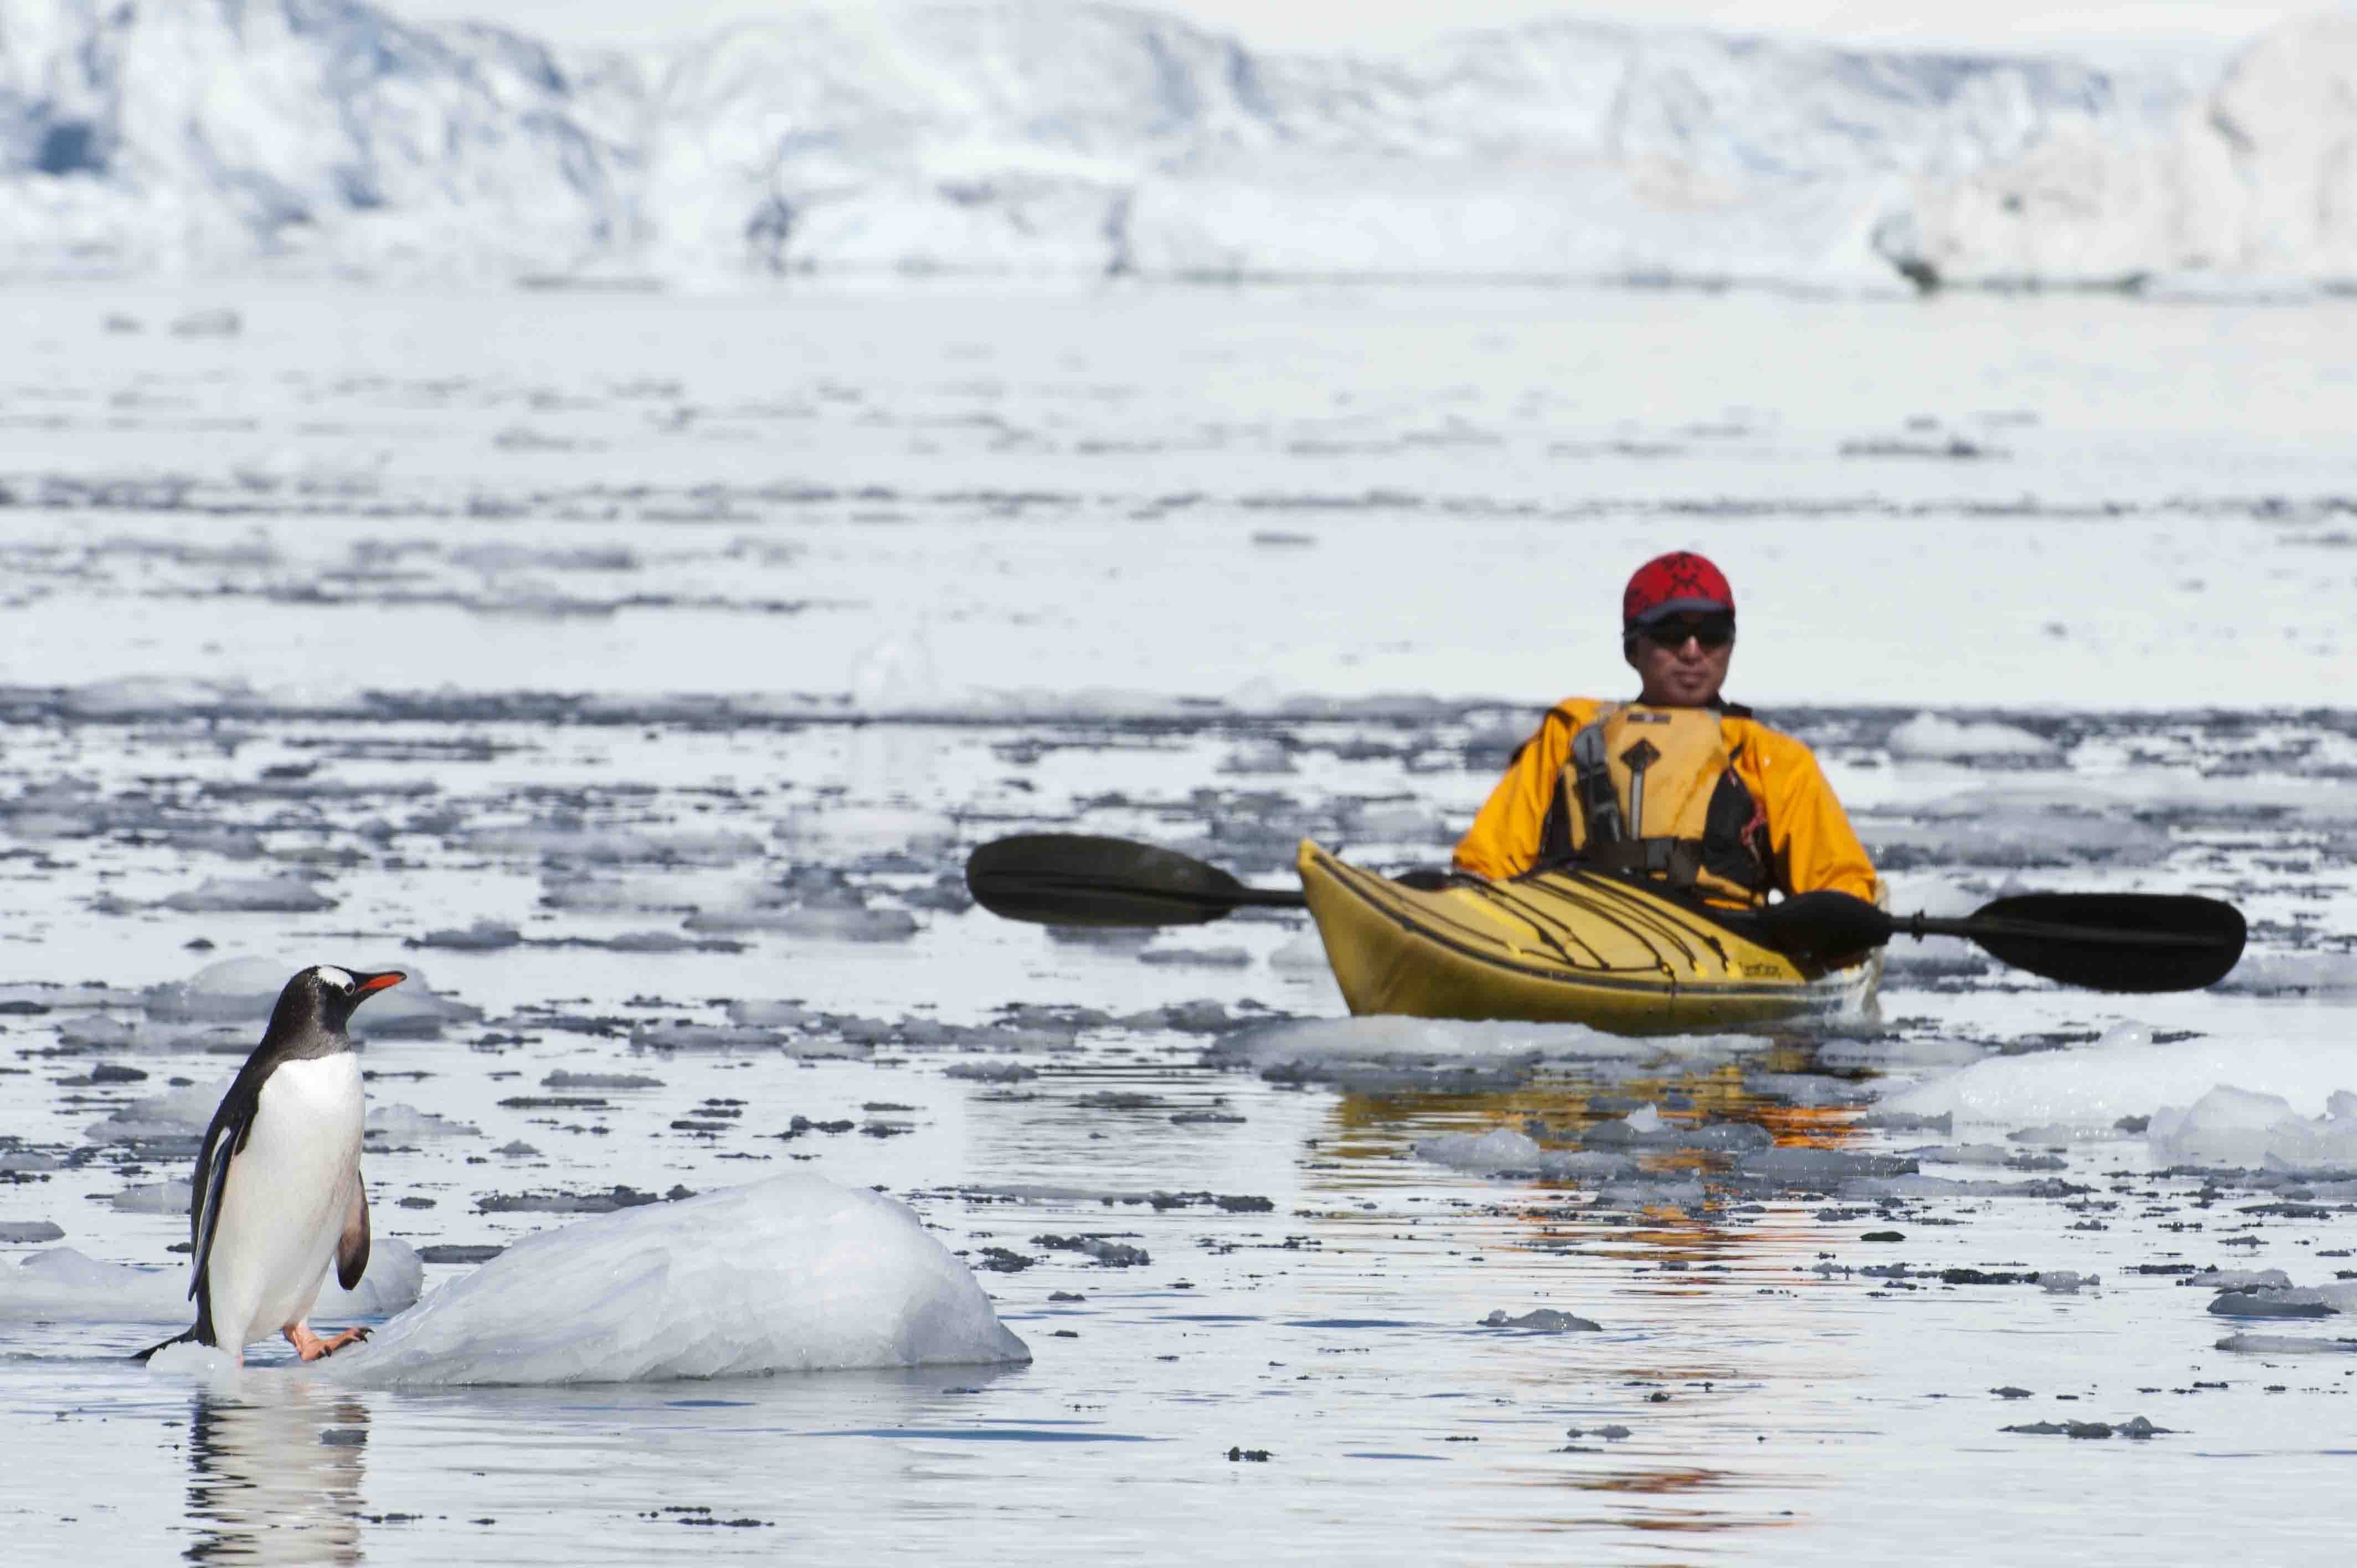 Sea kayak in Antarctica on a One Ocean Expeditions cruise and see wildlife close up.